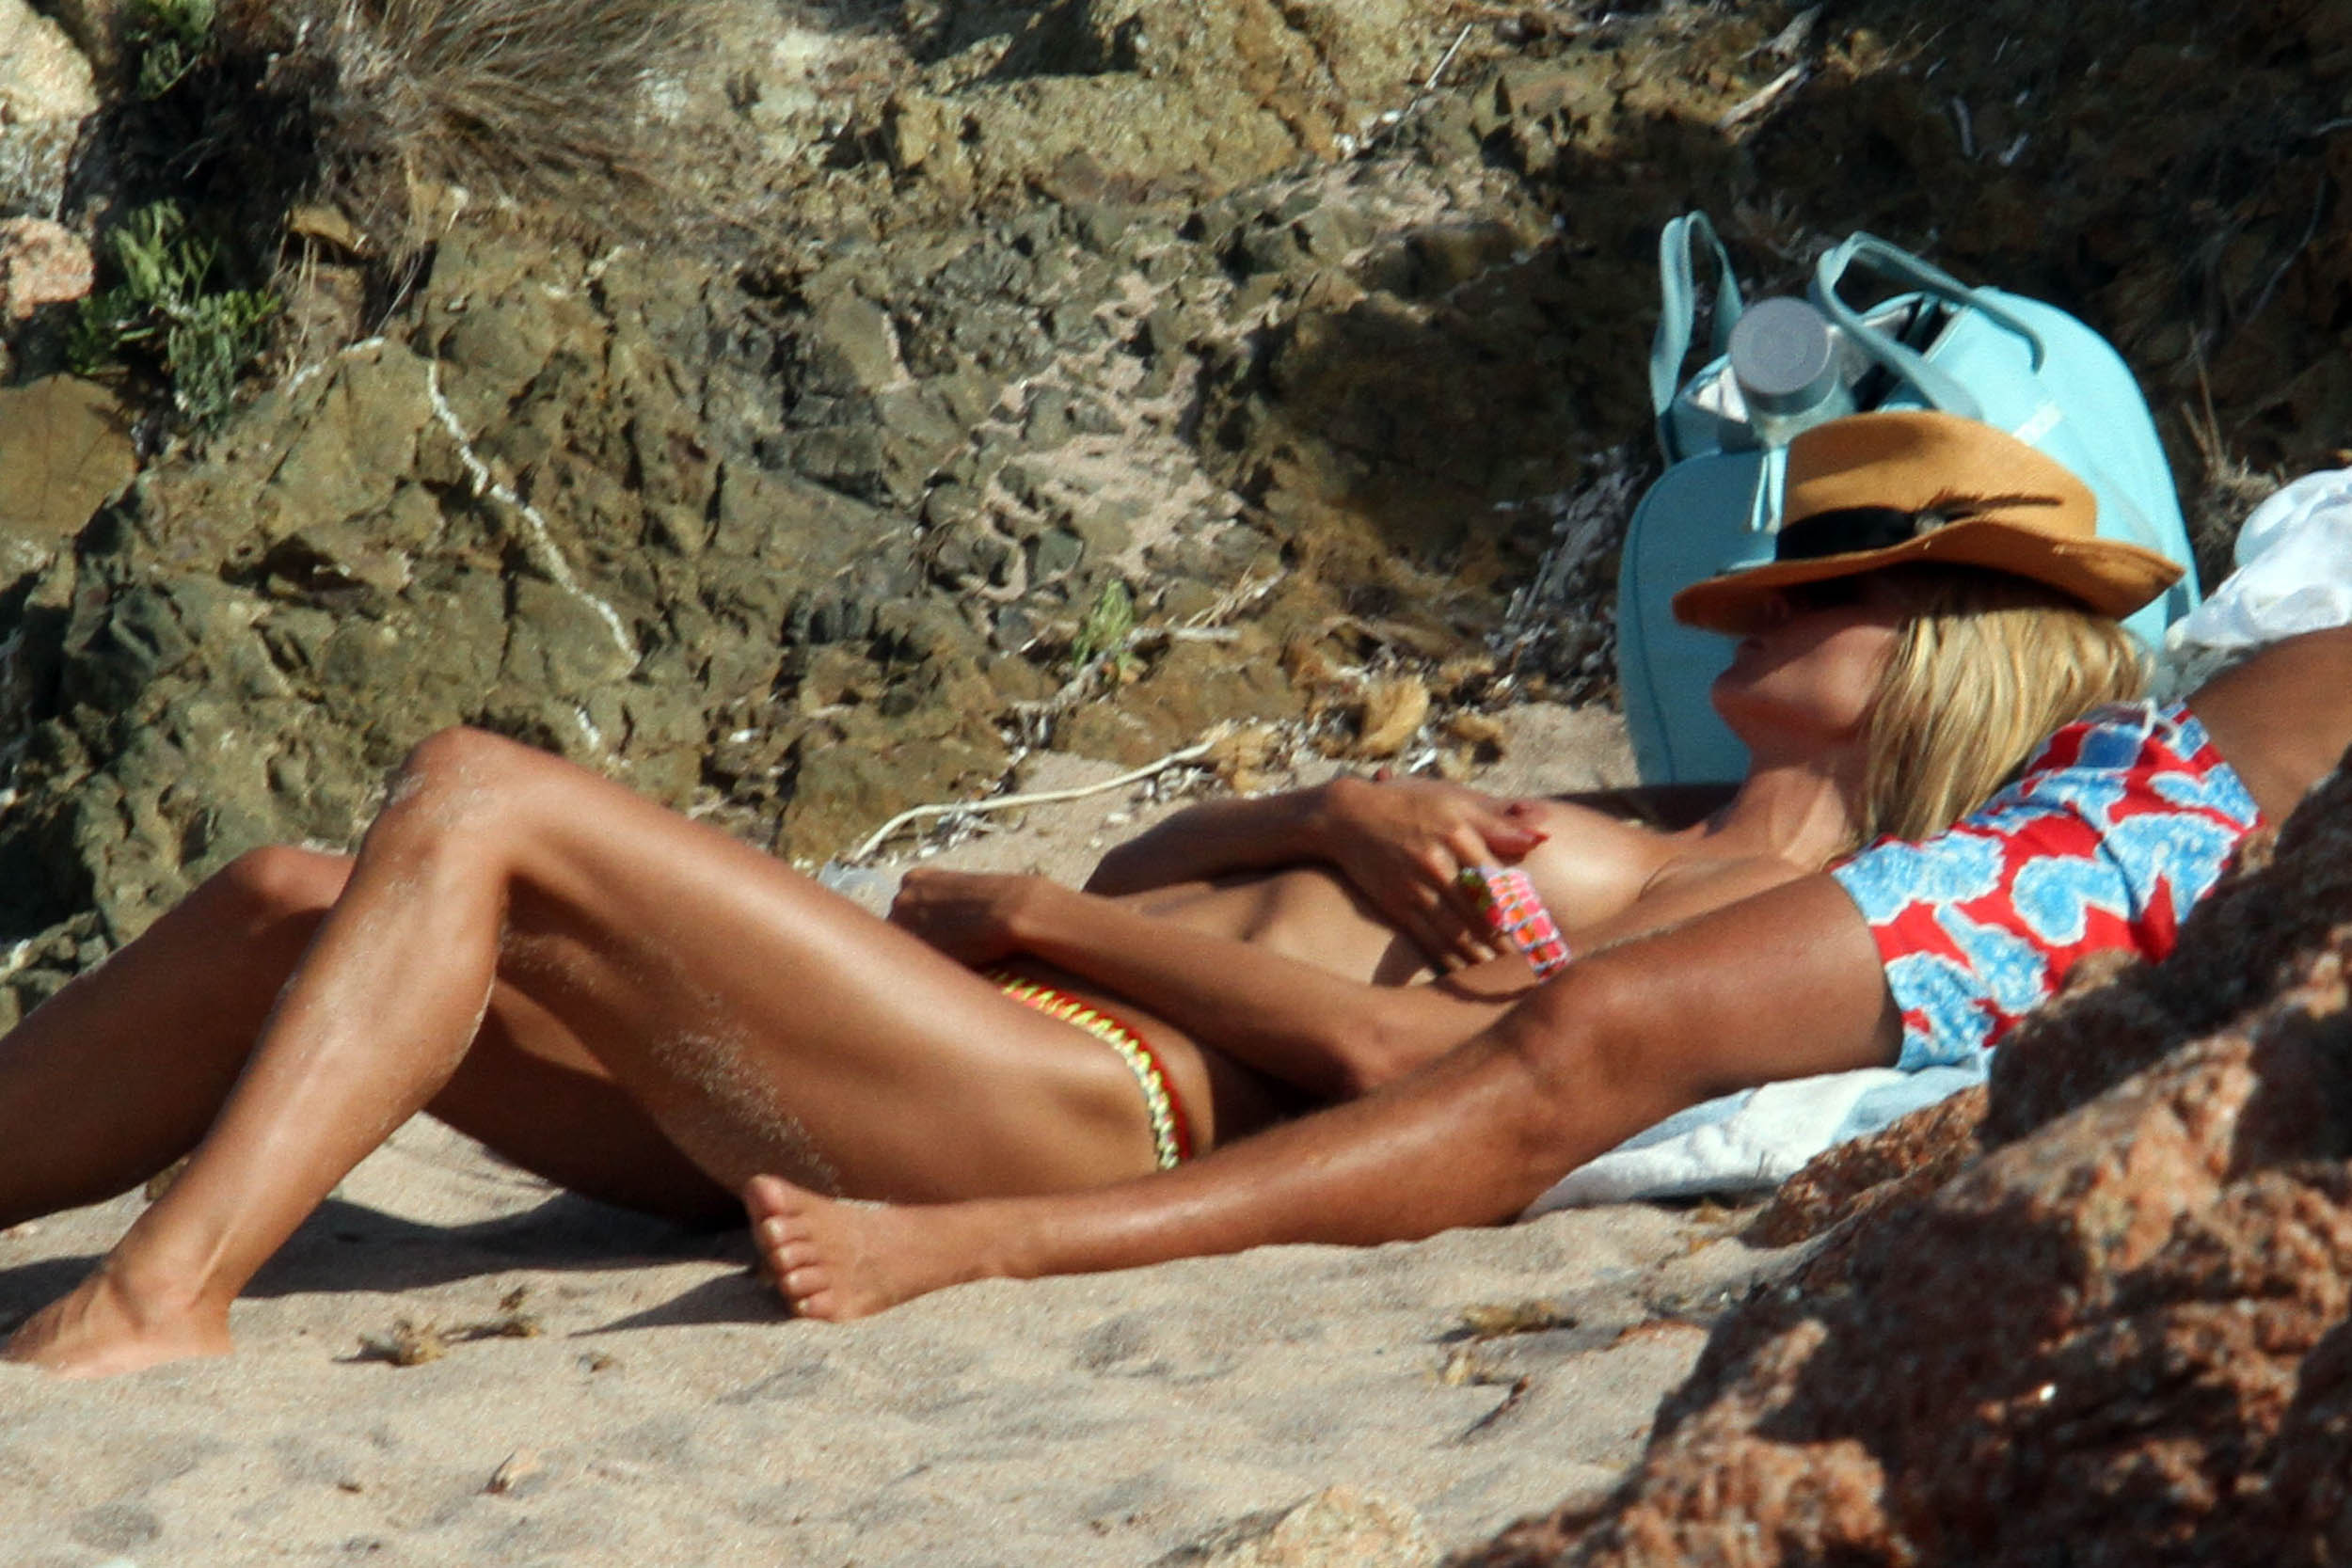 nude at the beach pics  236403